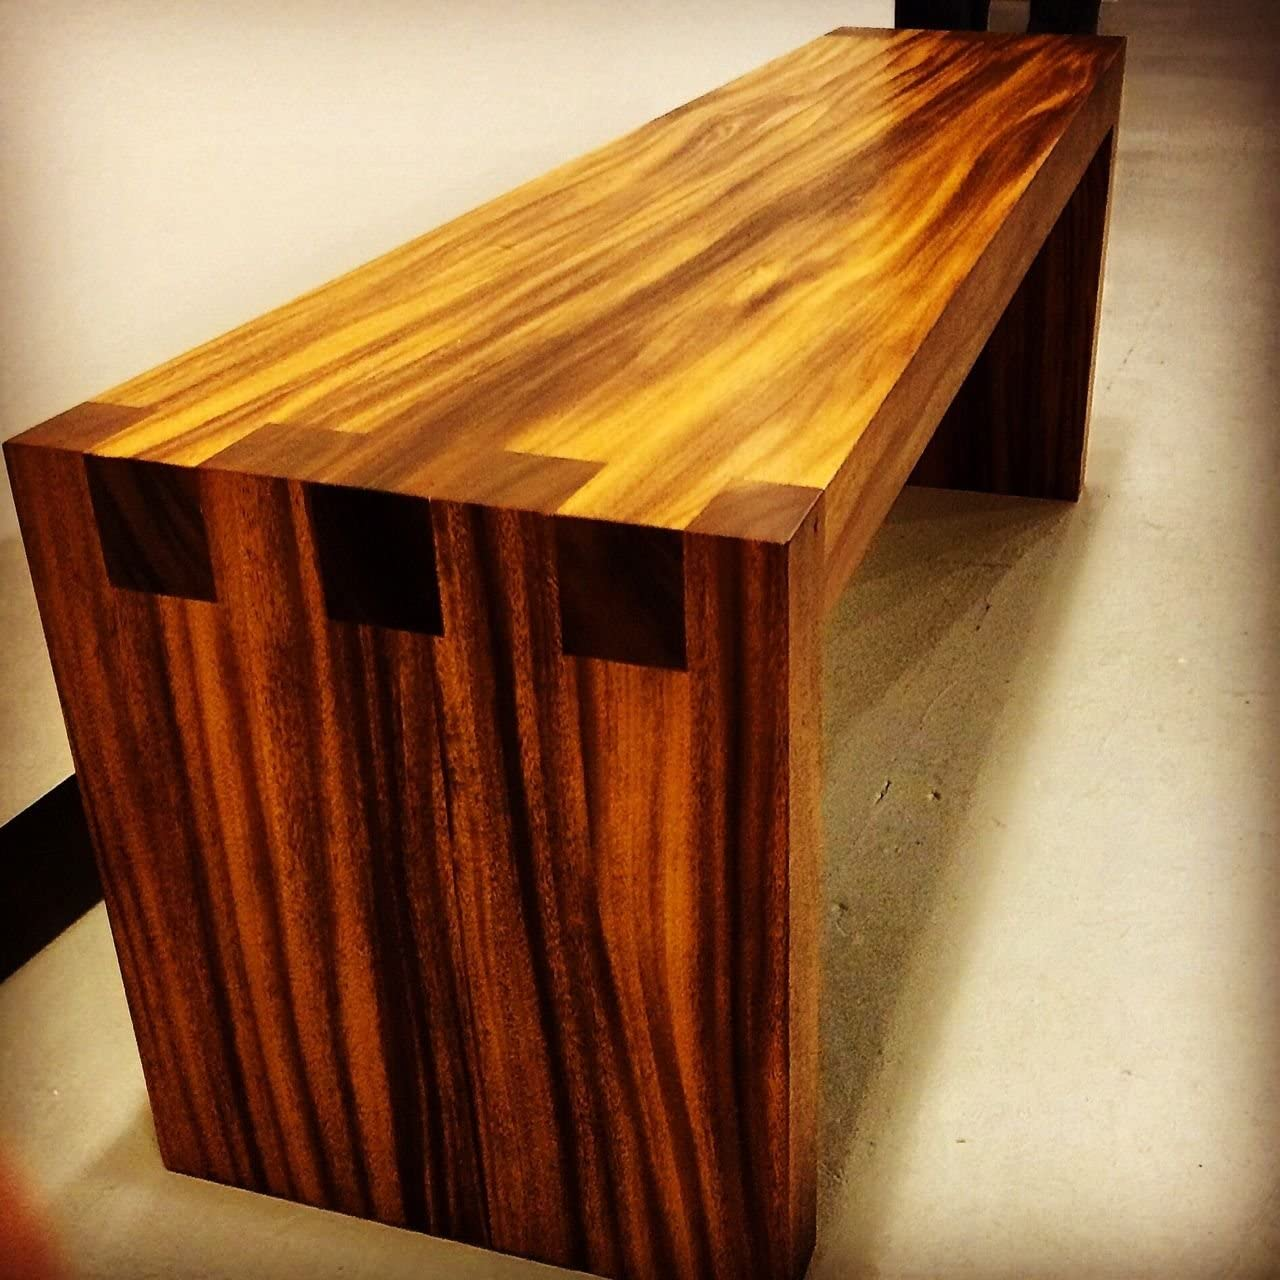 Amazon Com Monkeypod Wood 1 Inch Thick X 3 13 Inch Wide X 24 120 Inches Long 5 Board Feet Kitchen Dining Inches to feet feet to inches. 13 inch wide x 24 120 inches long